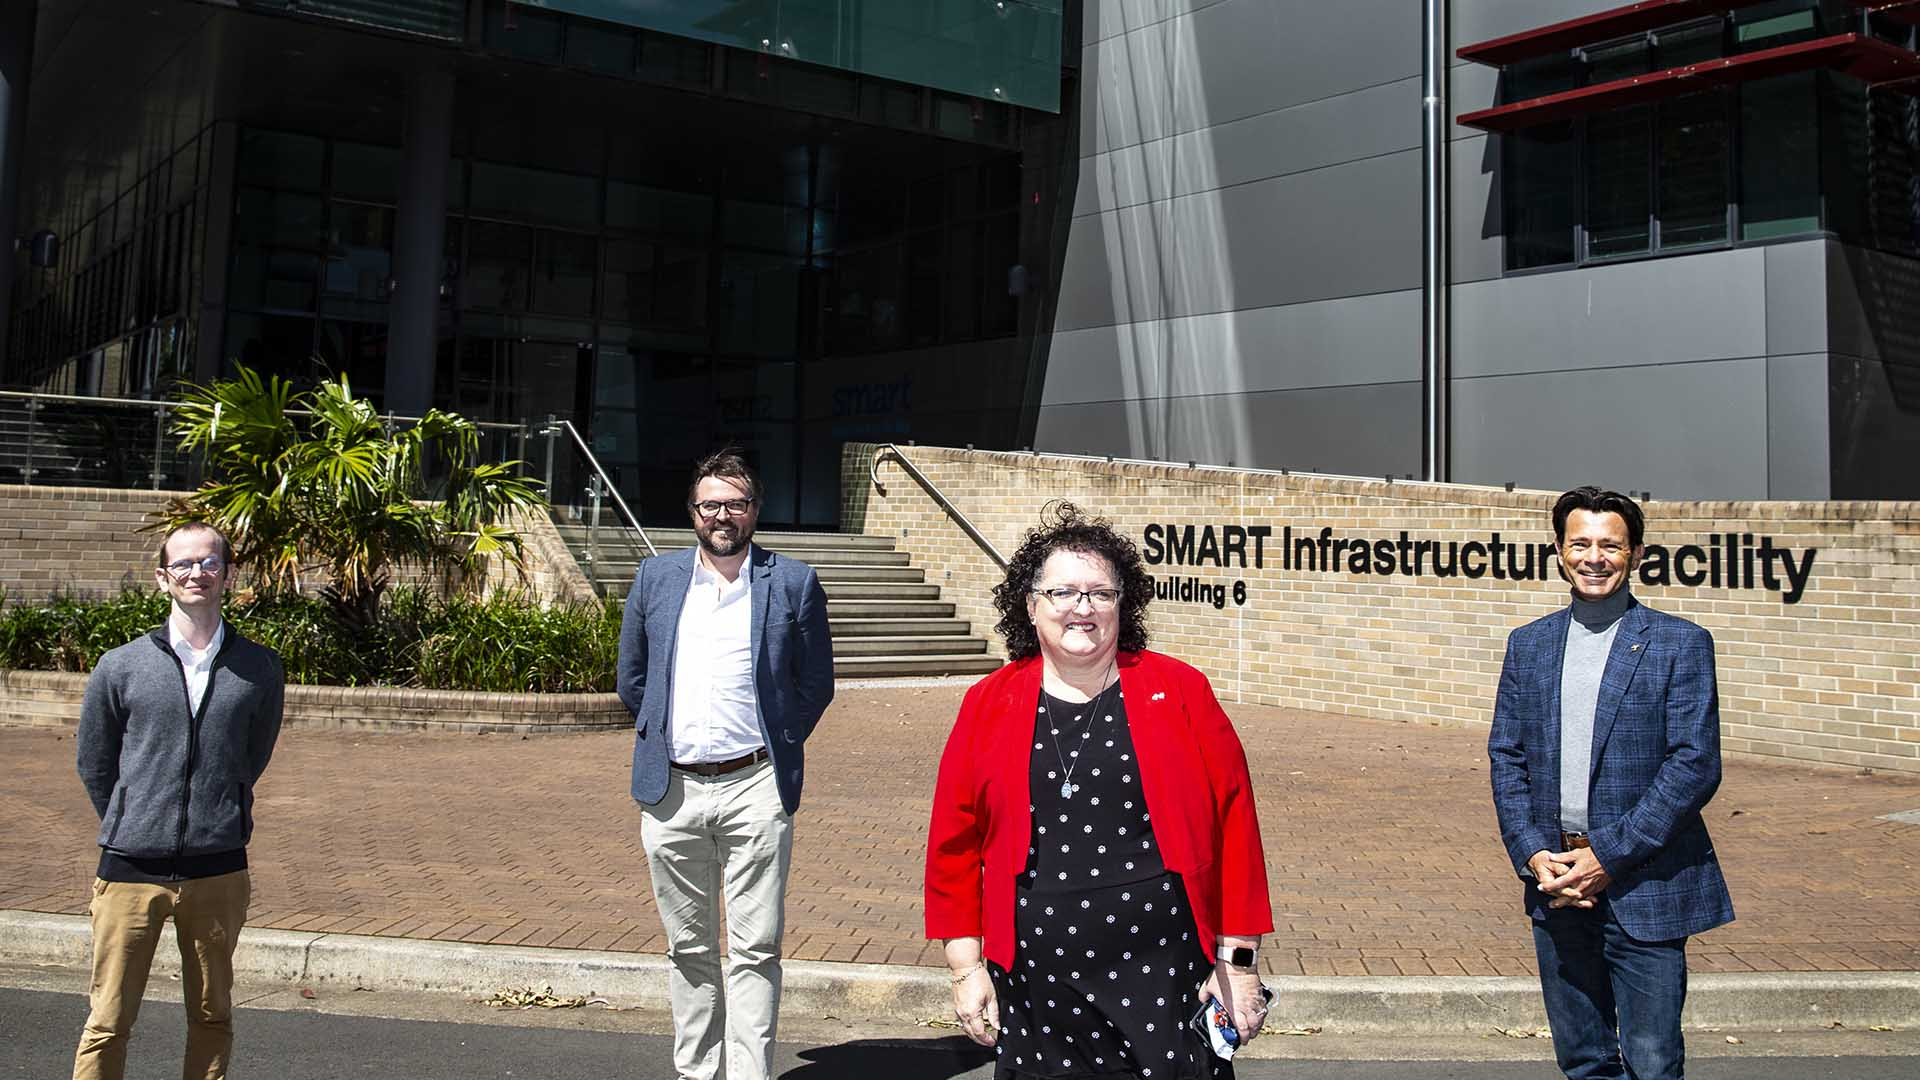 Johan Barthelemy, Iain Russell, Tania Brown, Pascal Perez at the SMART Infrastructure Facility for the launch of the Telstra-UOW Hub for AIOT Solutions